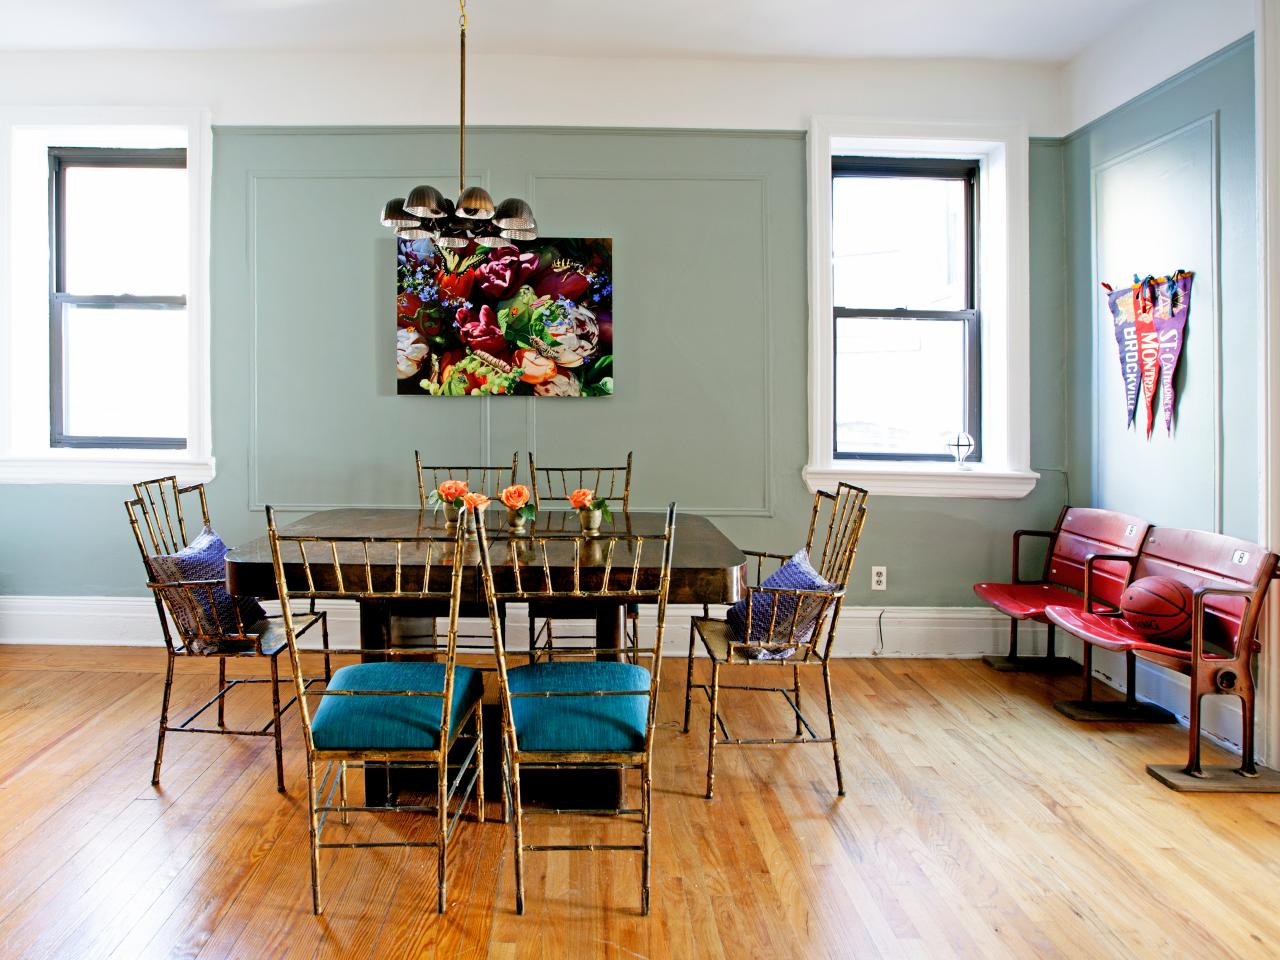 Eclectic Dining Room With Vintage Stadium Seating